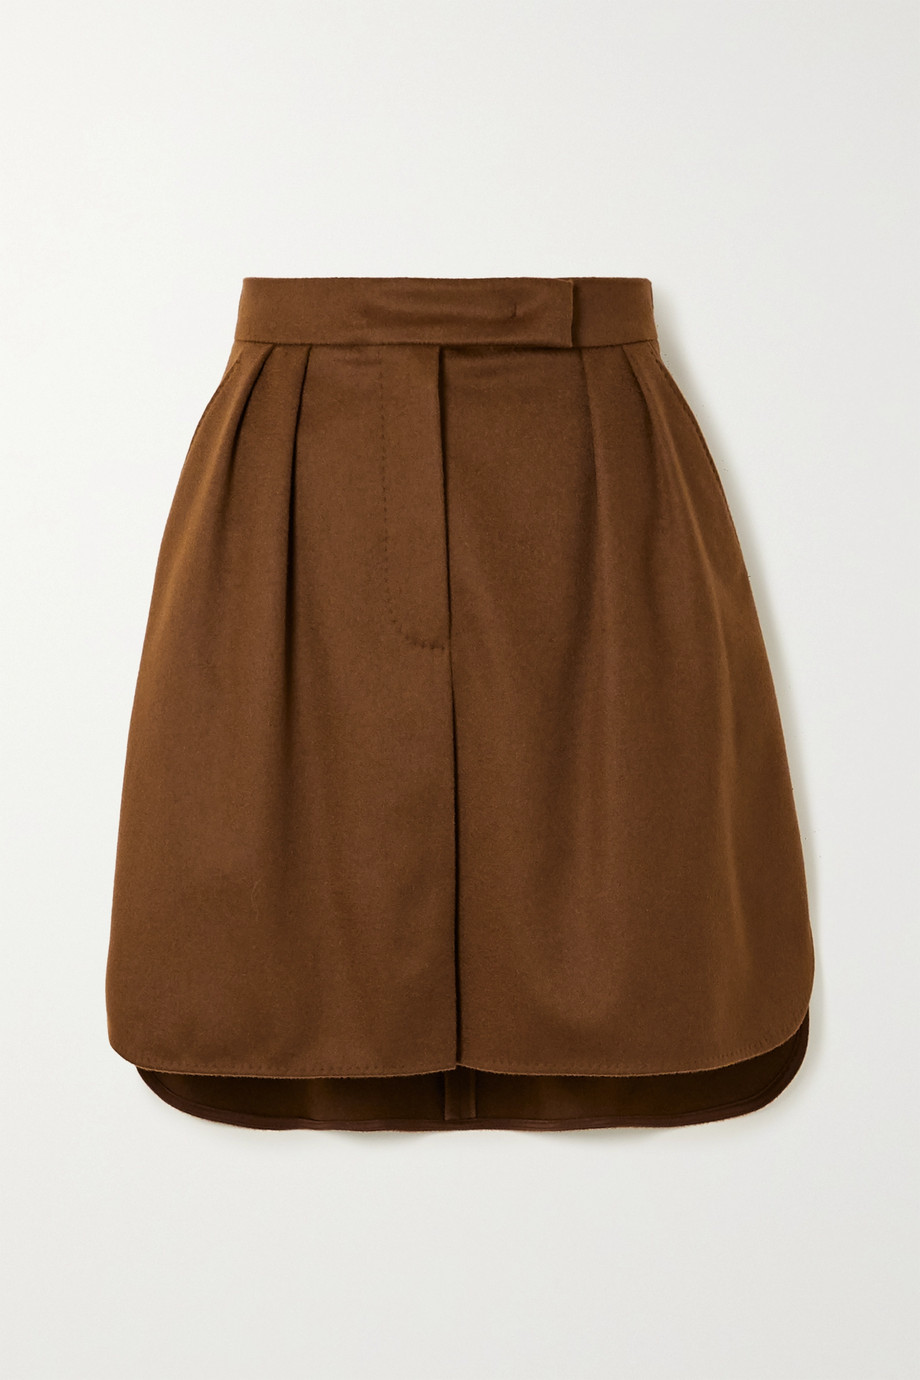 Max Mara Zorro camel hair mini skirt